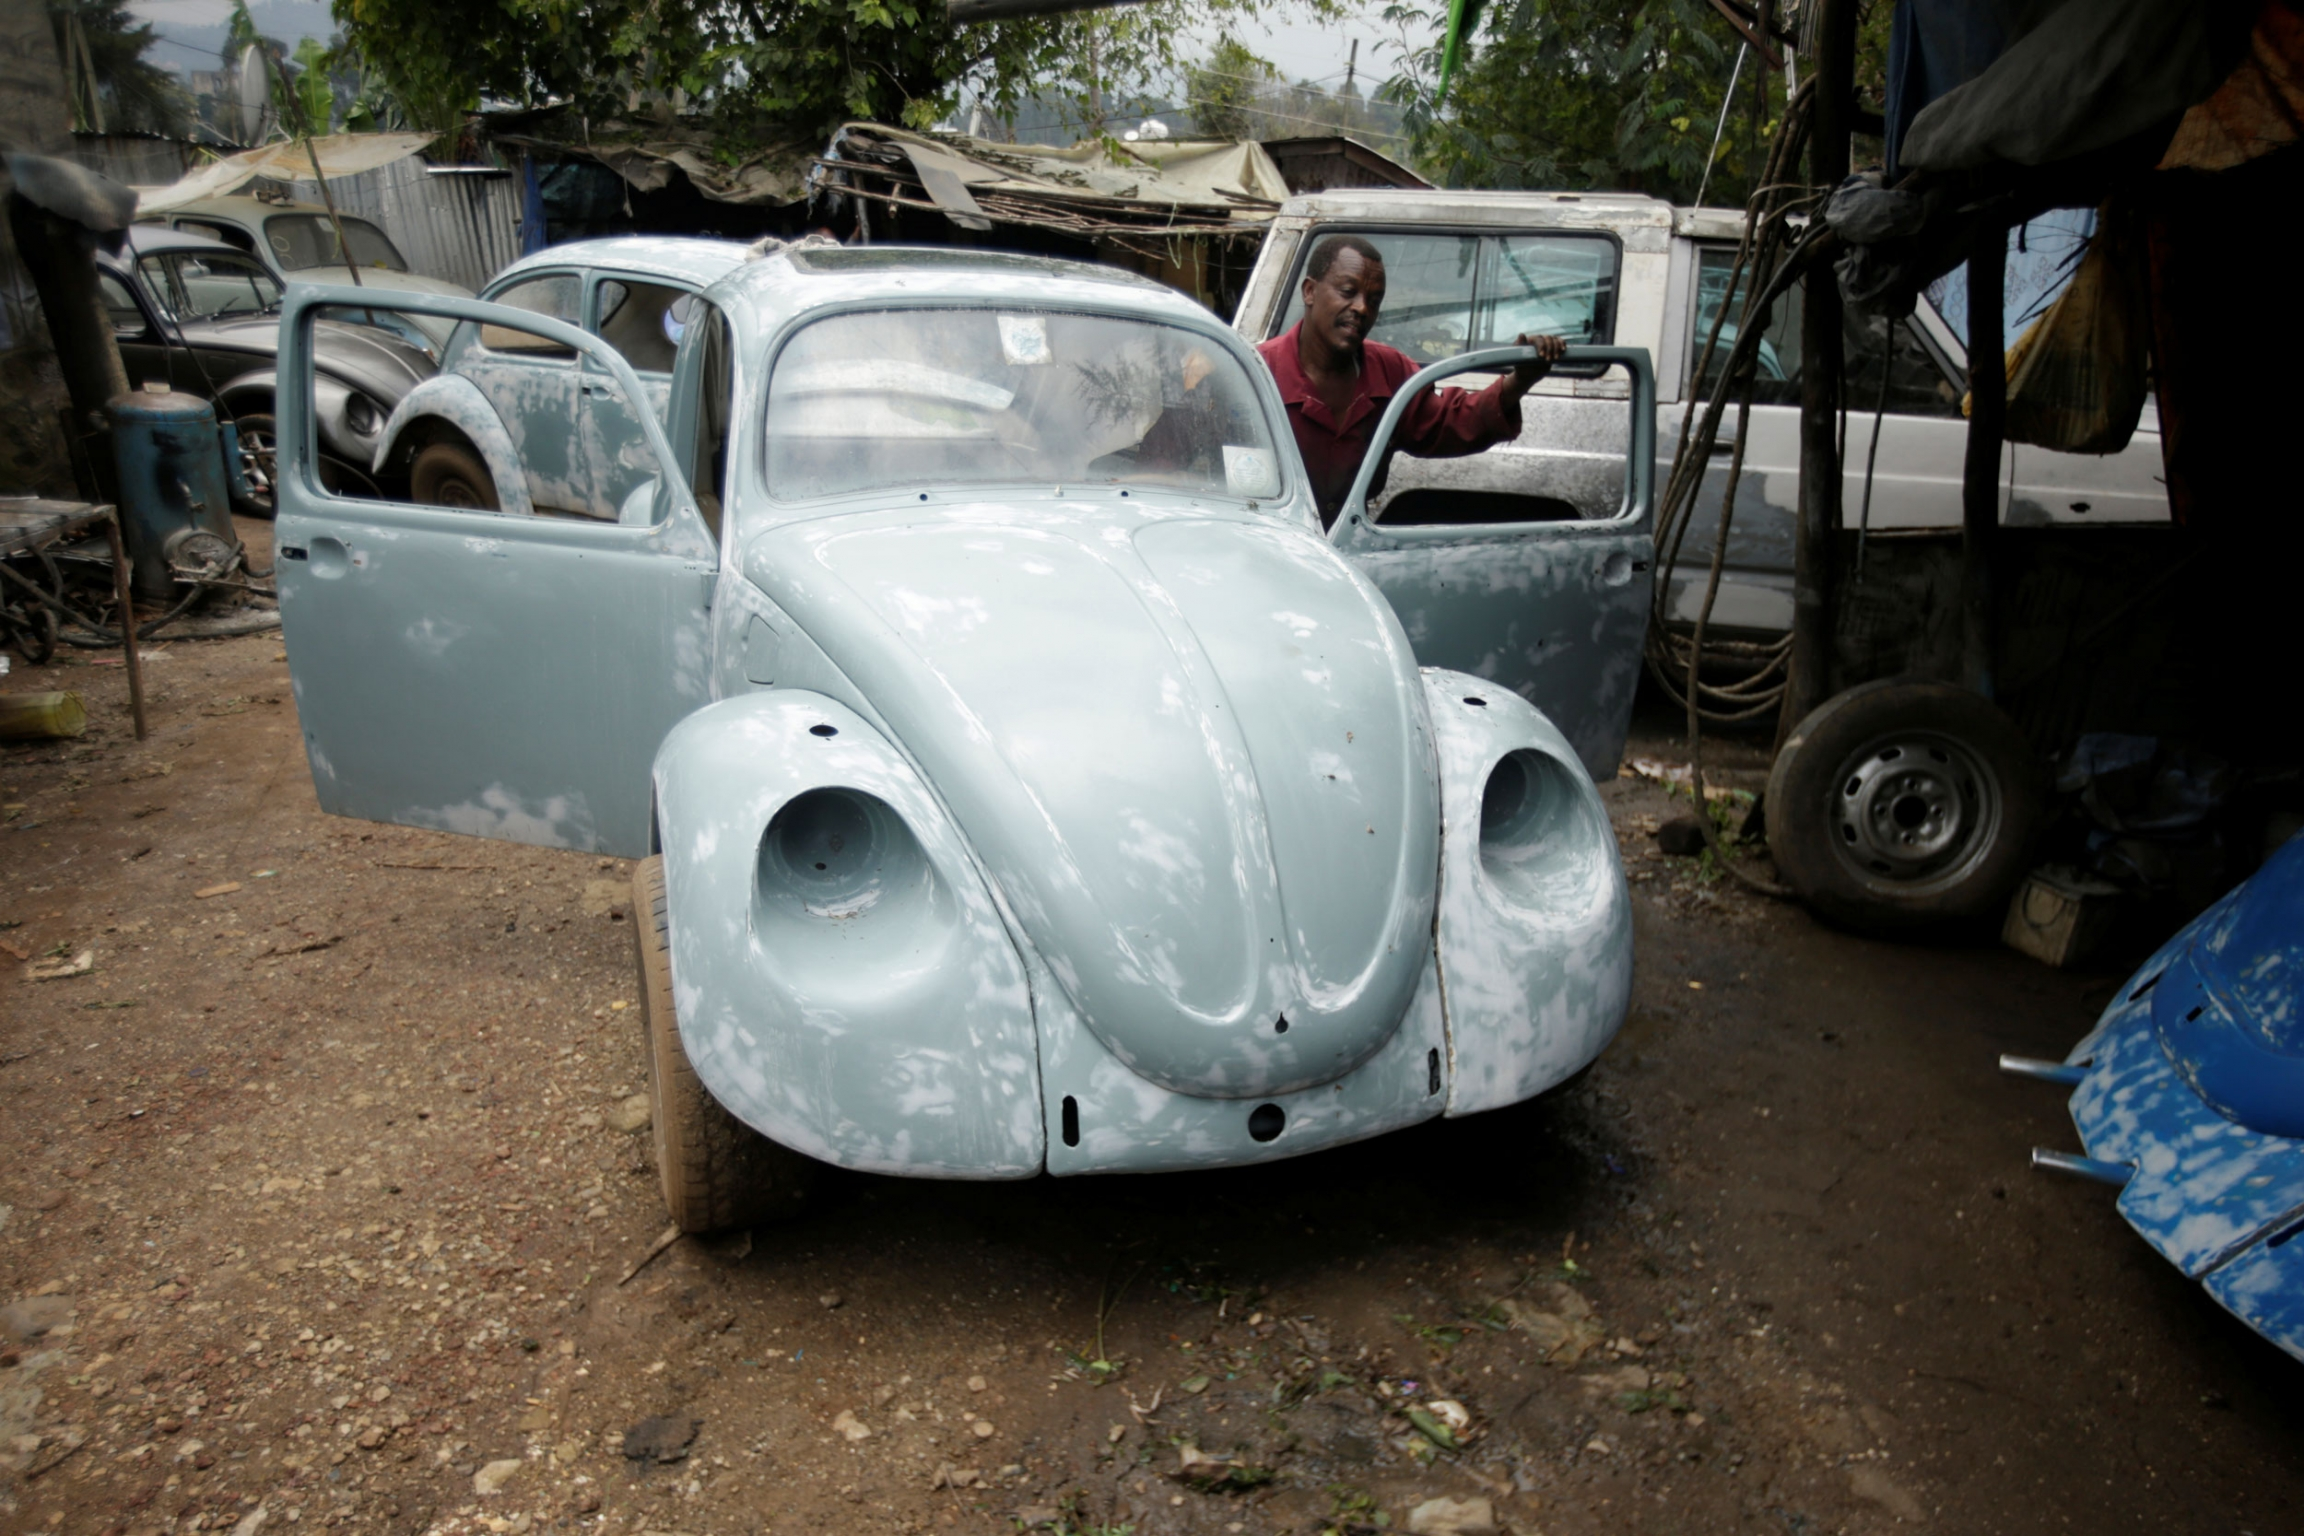 A man is shown behind an open door of a Volkswagen Beetle while he is pushing it.